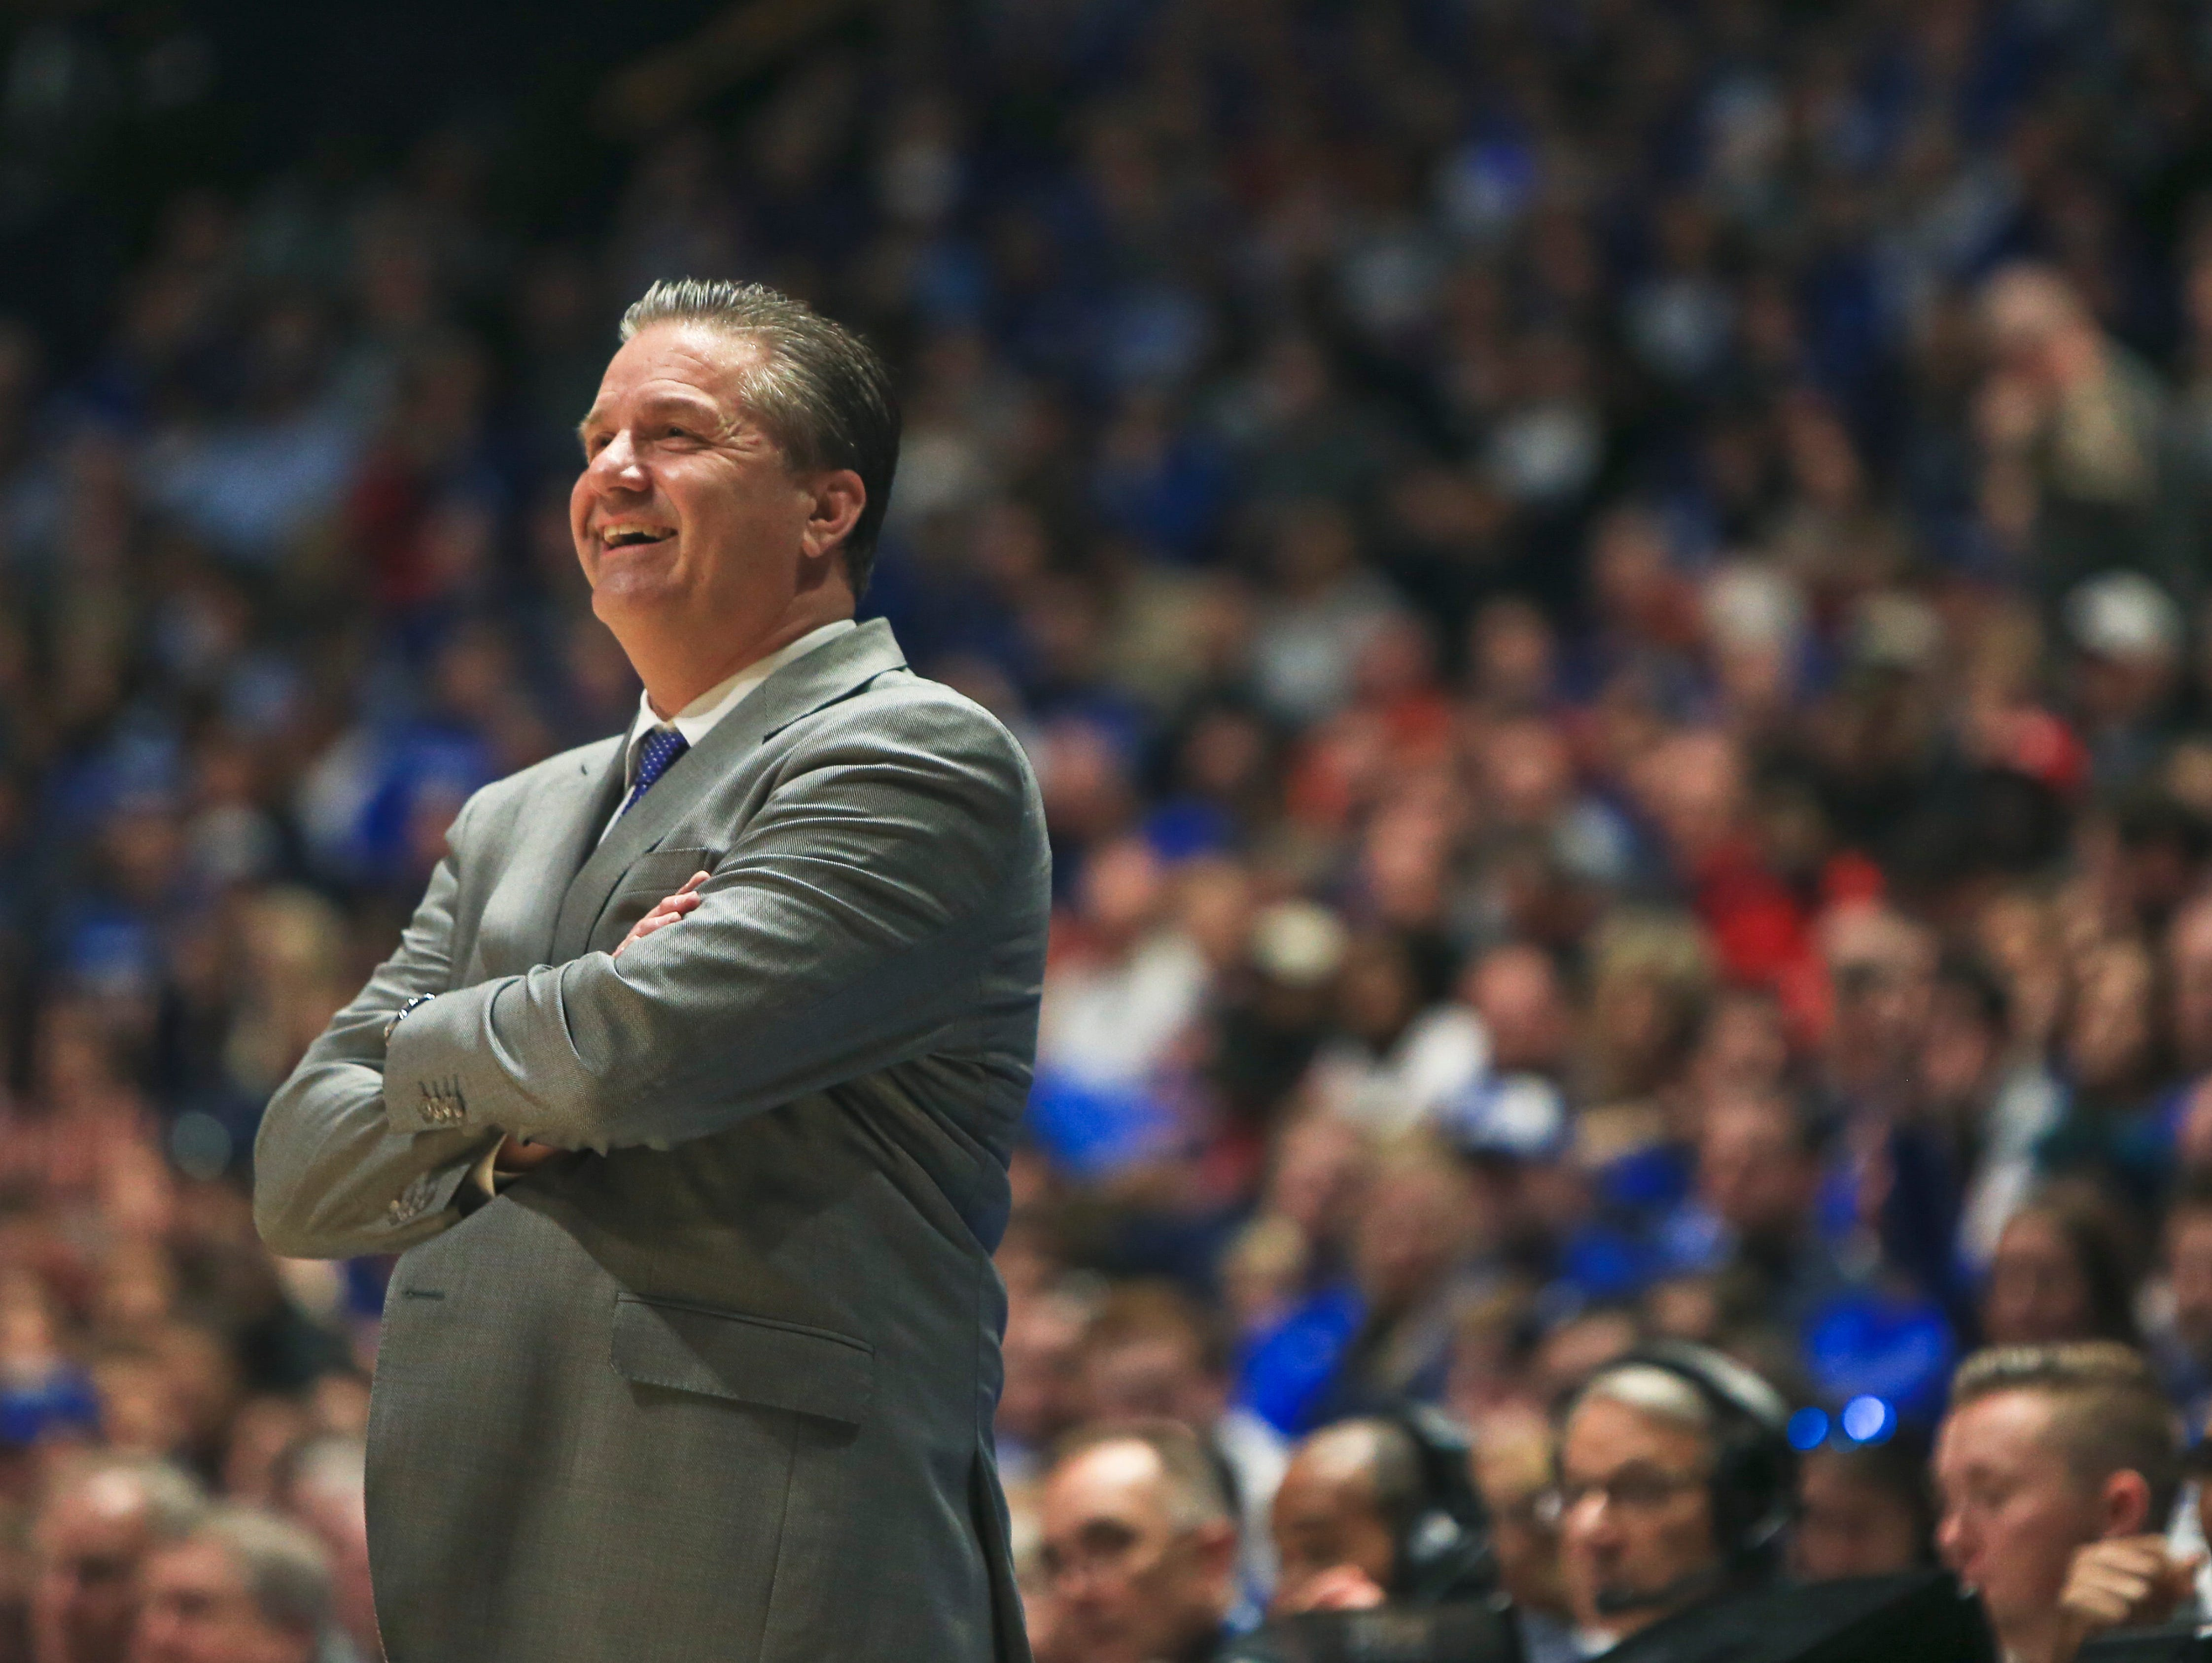 John Calipari find some reasons to smile as the Wildcats rolled past Georgia Friday.